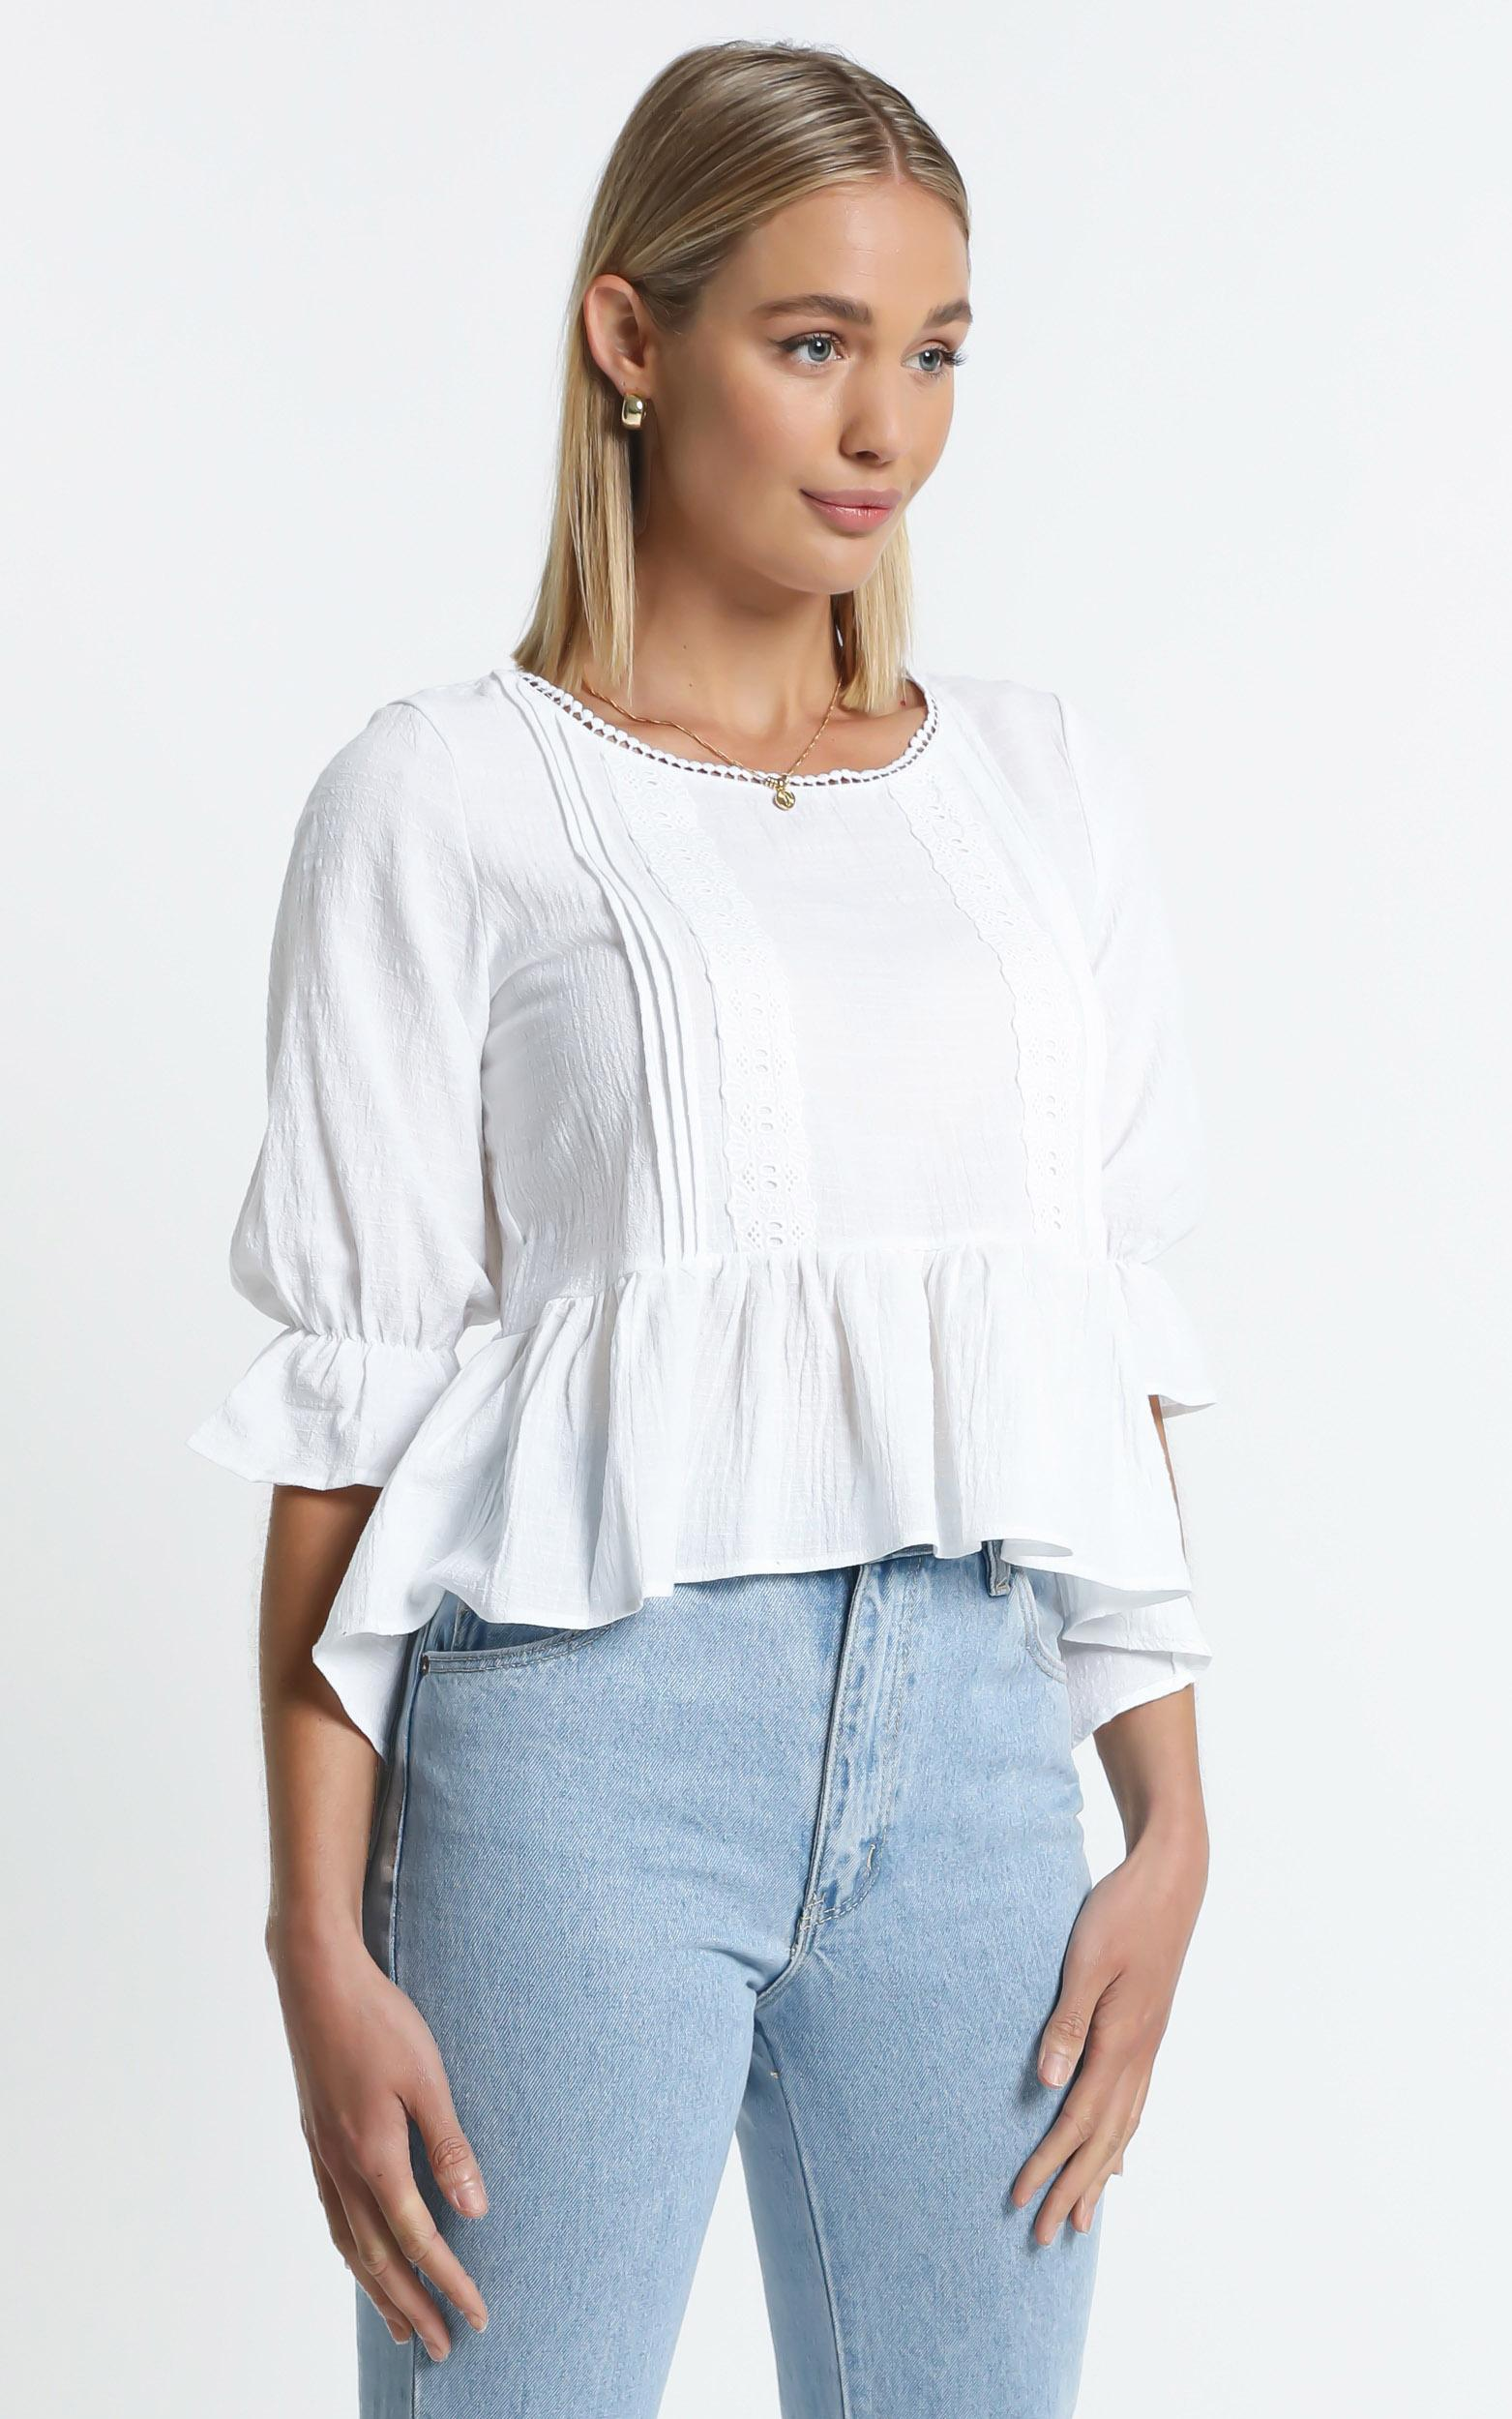 Locky Top in White - 6 (XS), White, hi-res image number null